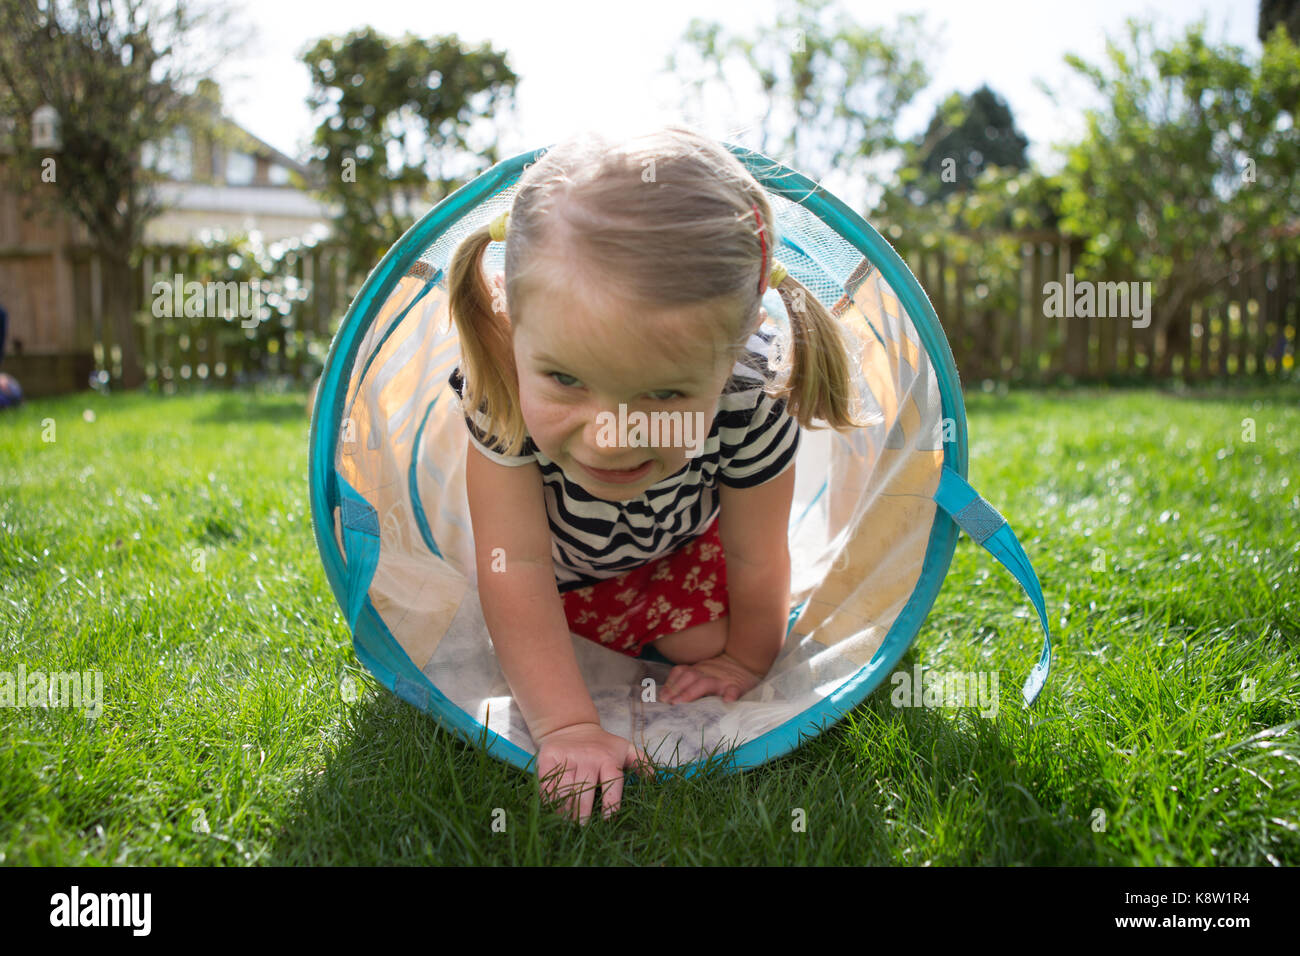 Little girl playing in garden Photo Stock